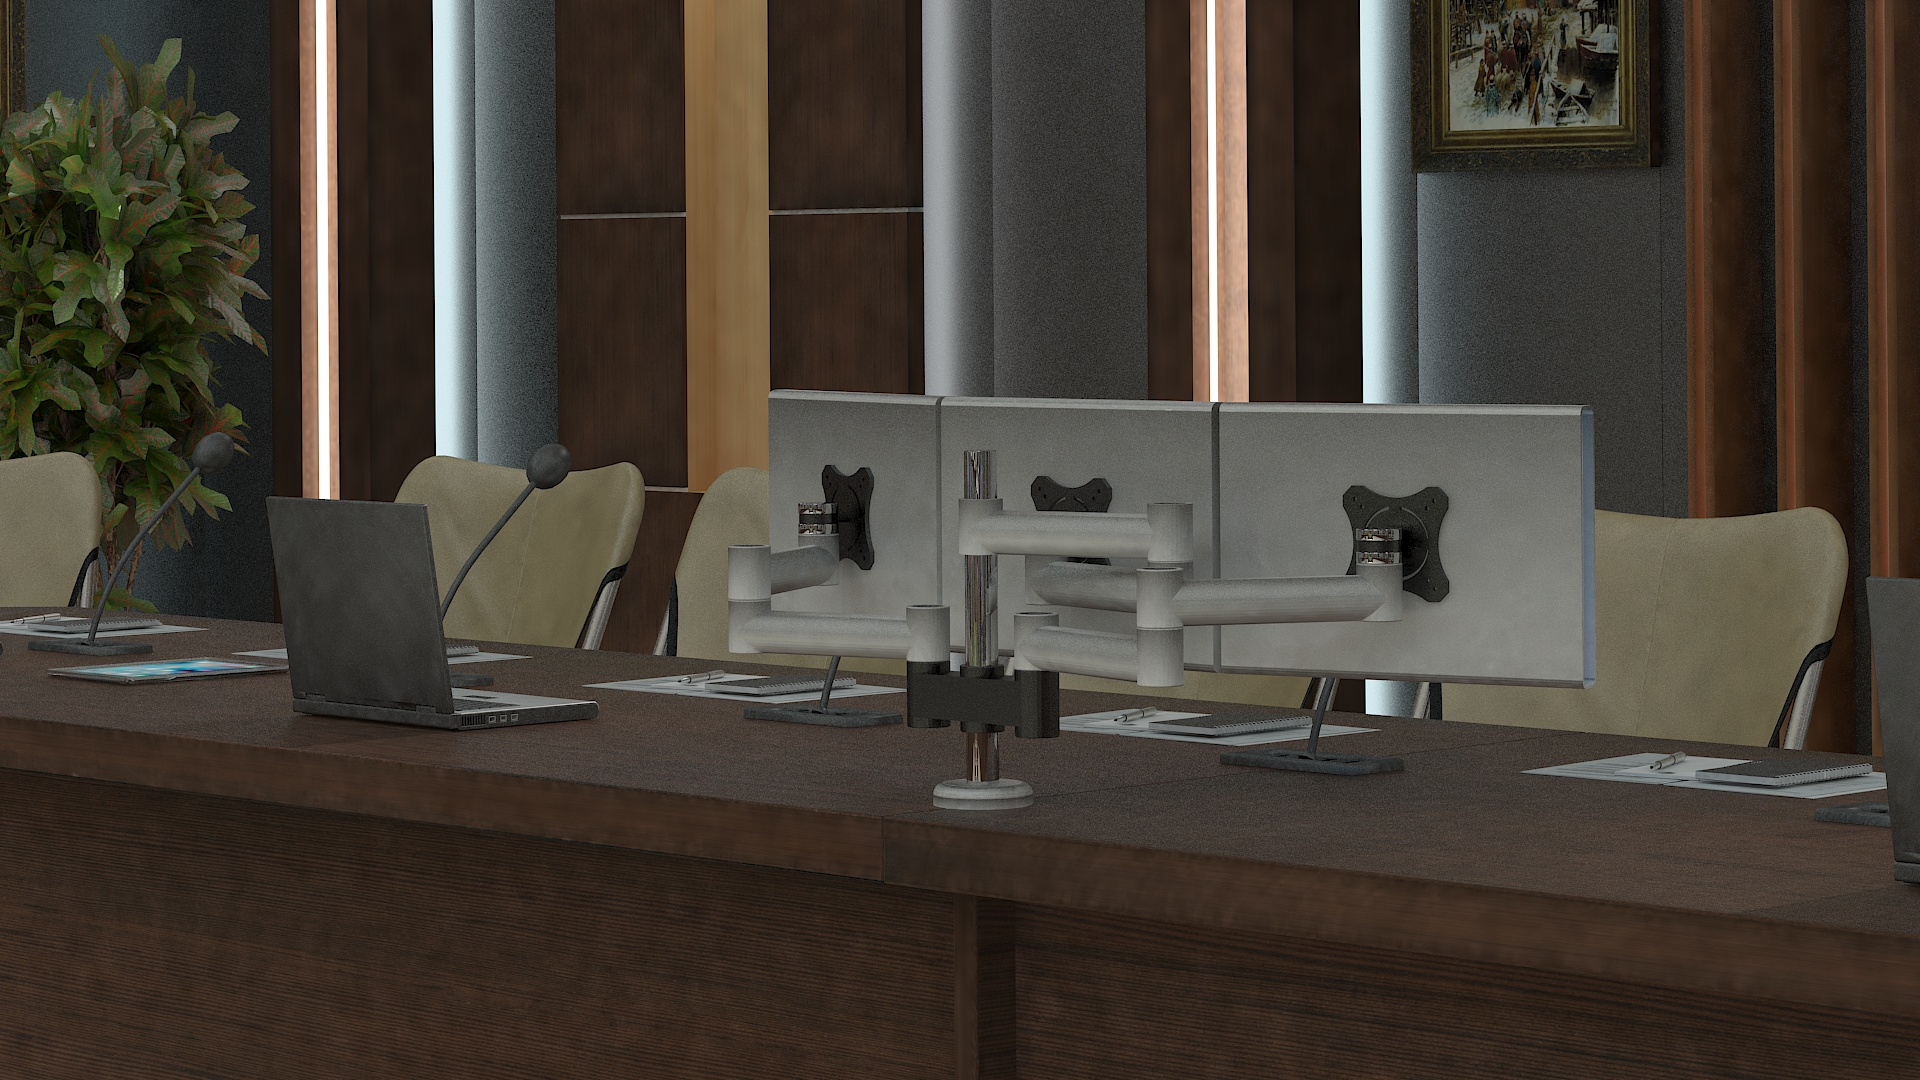 meeting room 1 3d model 3ds max dxf dwg 288142